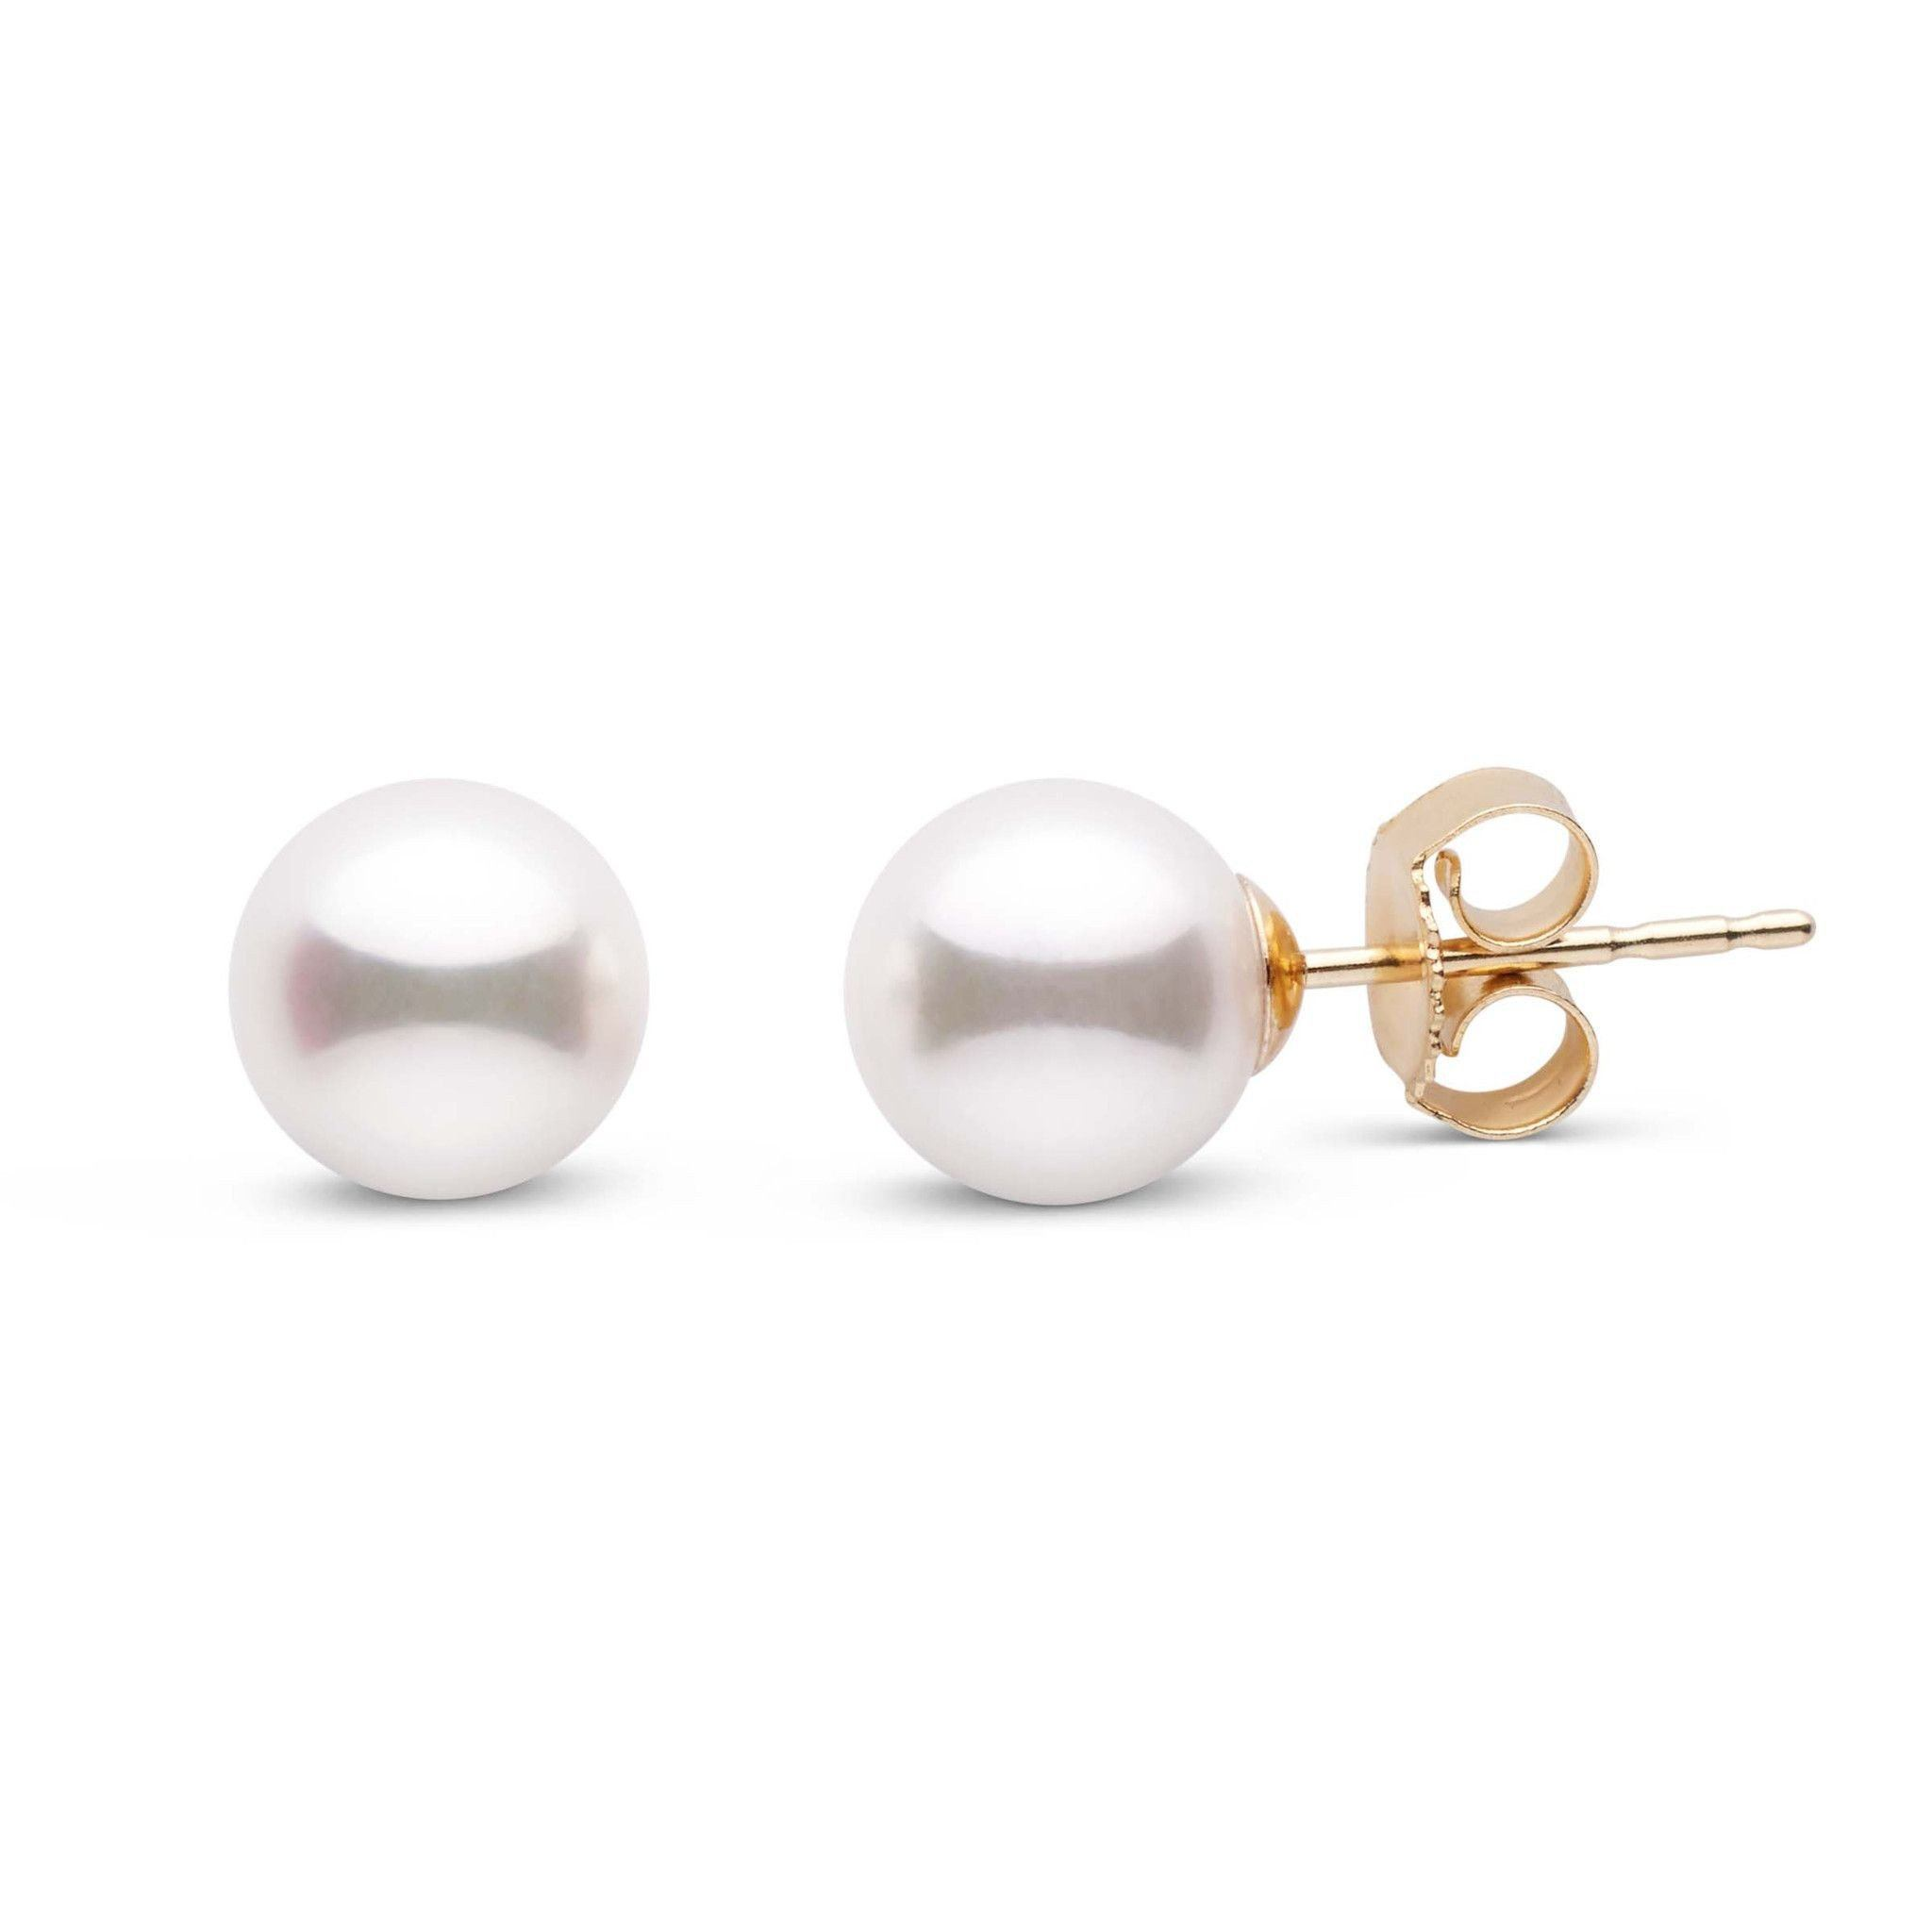 6.5-7.0 mm White Akoya AA+ Pearl Stud Earrings